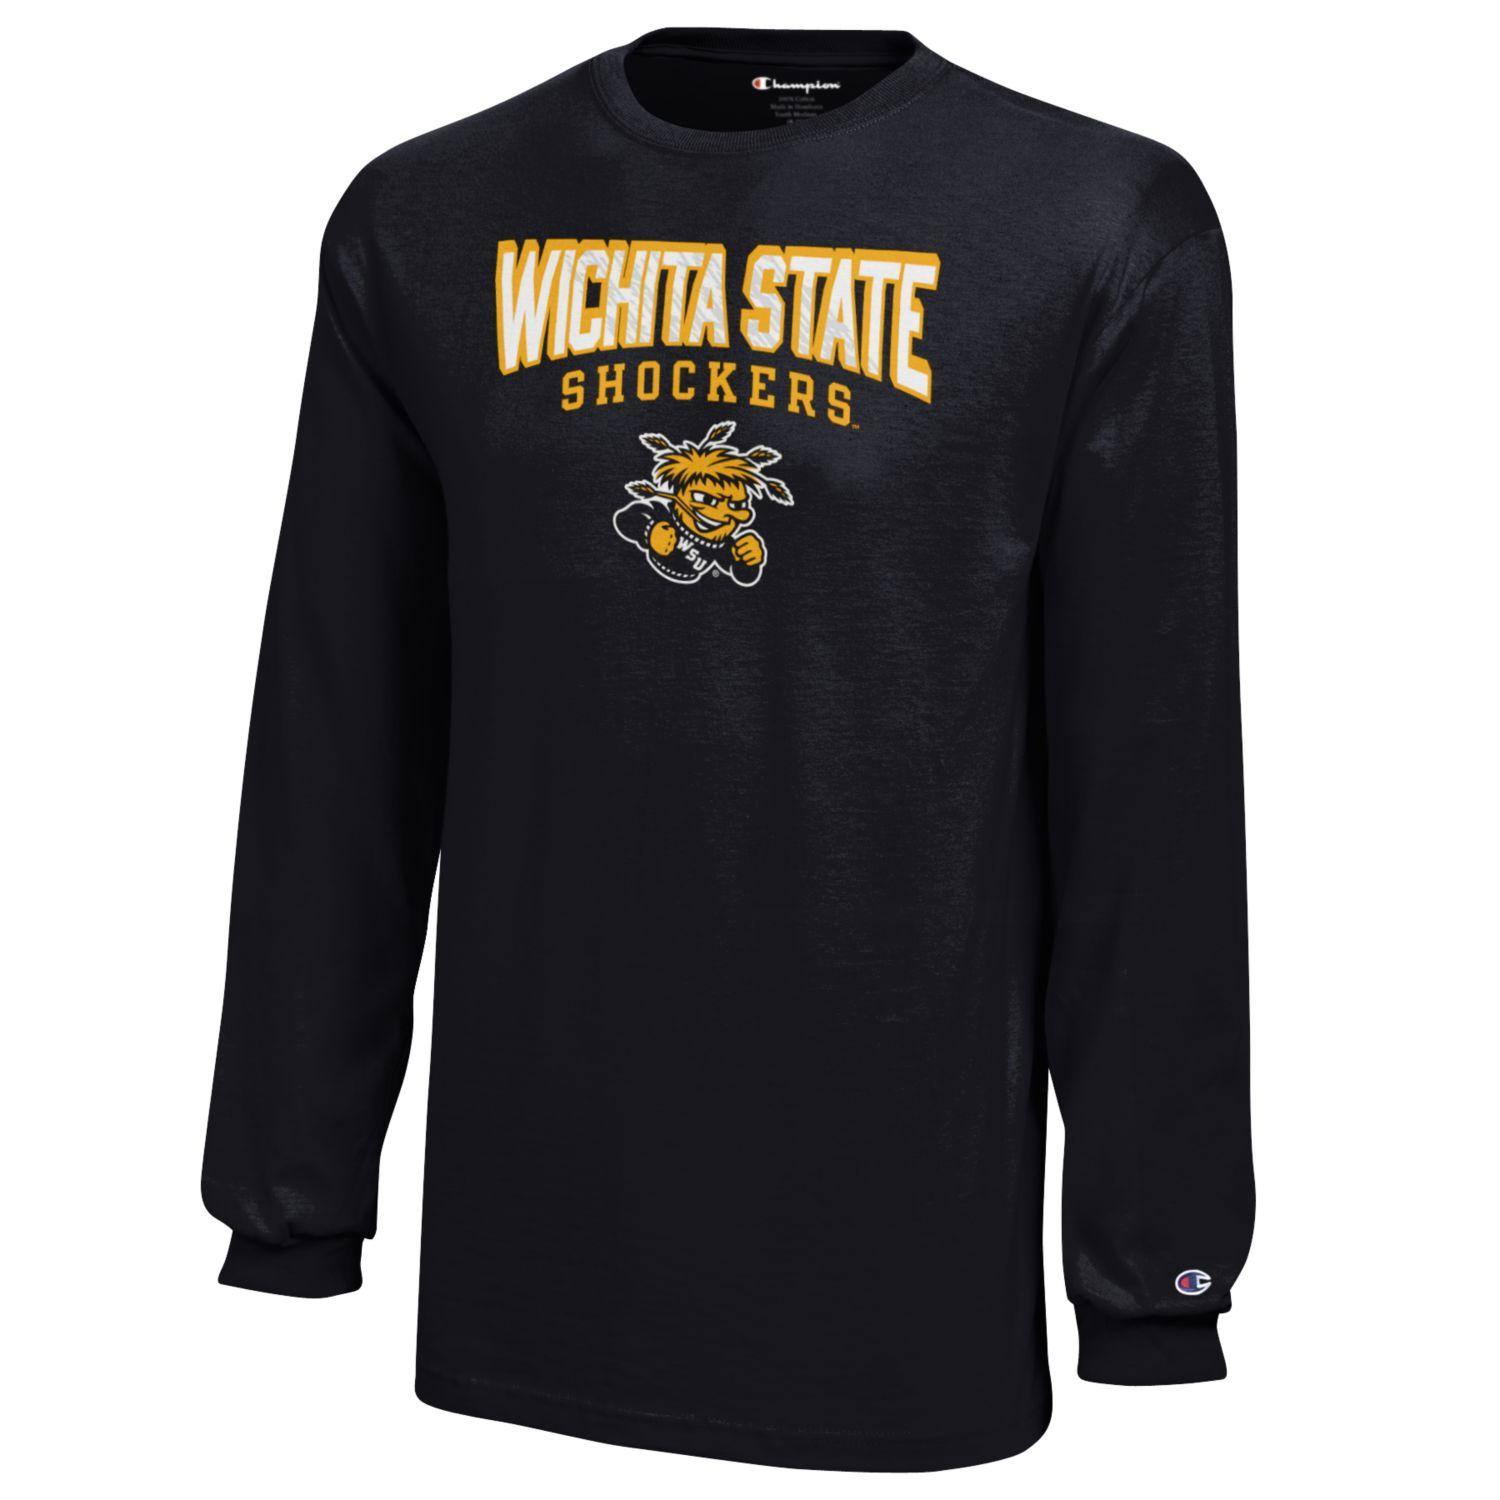 Image For Champion® WichitaState™ Youth Long-Sleeve T-Shirt